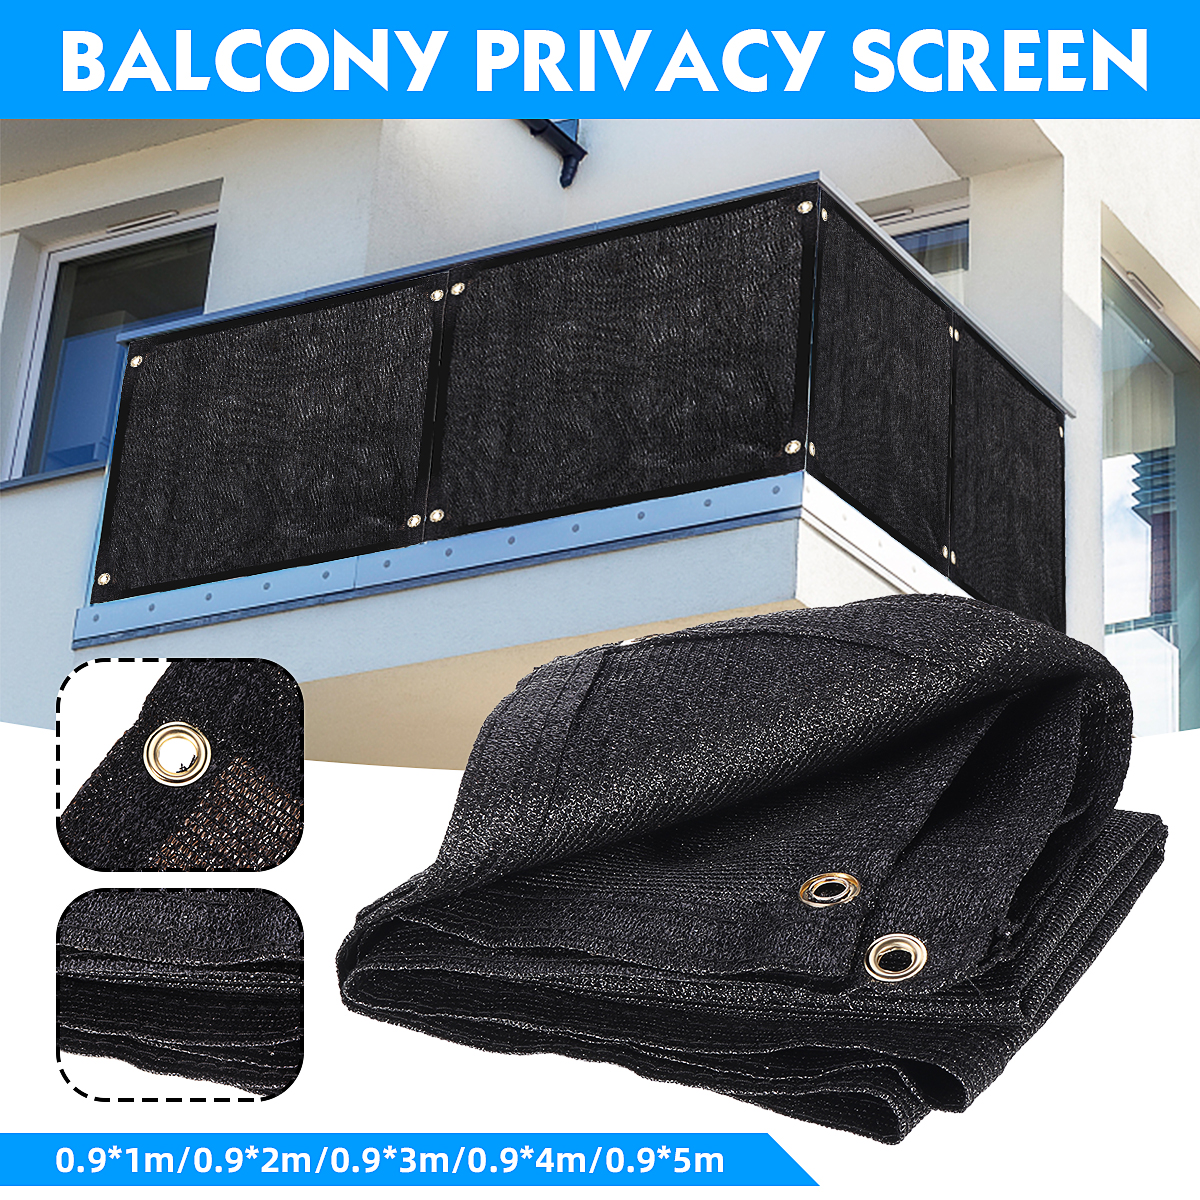 【Ready Stock】90cm Balcony Privacy Screen Gardening Sunshade Cover Summer Residence Fence